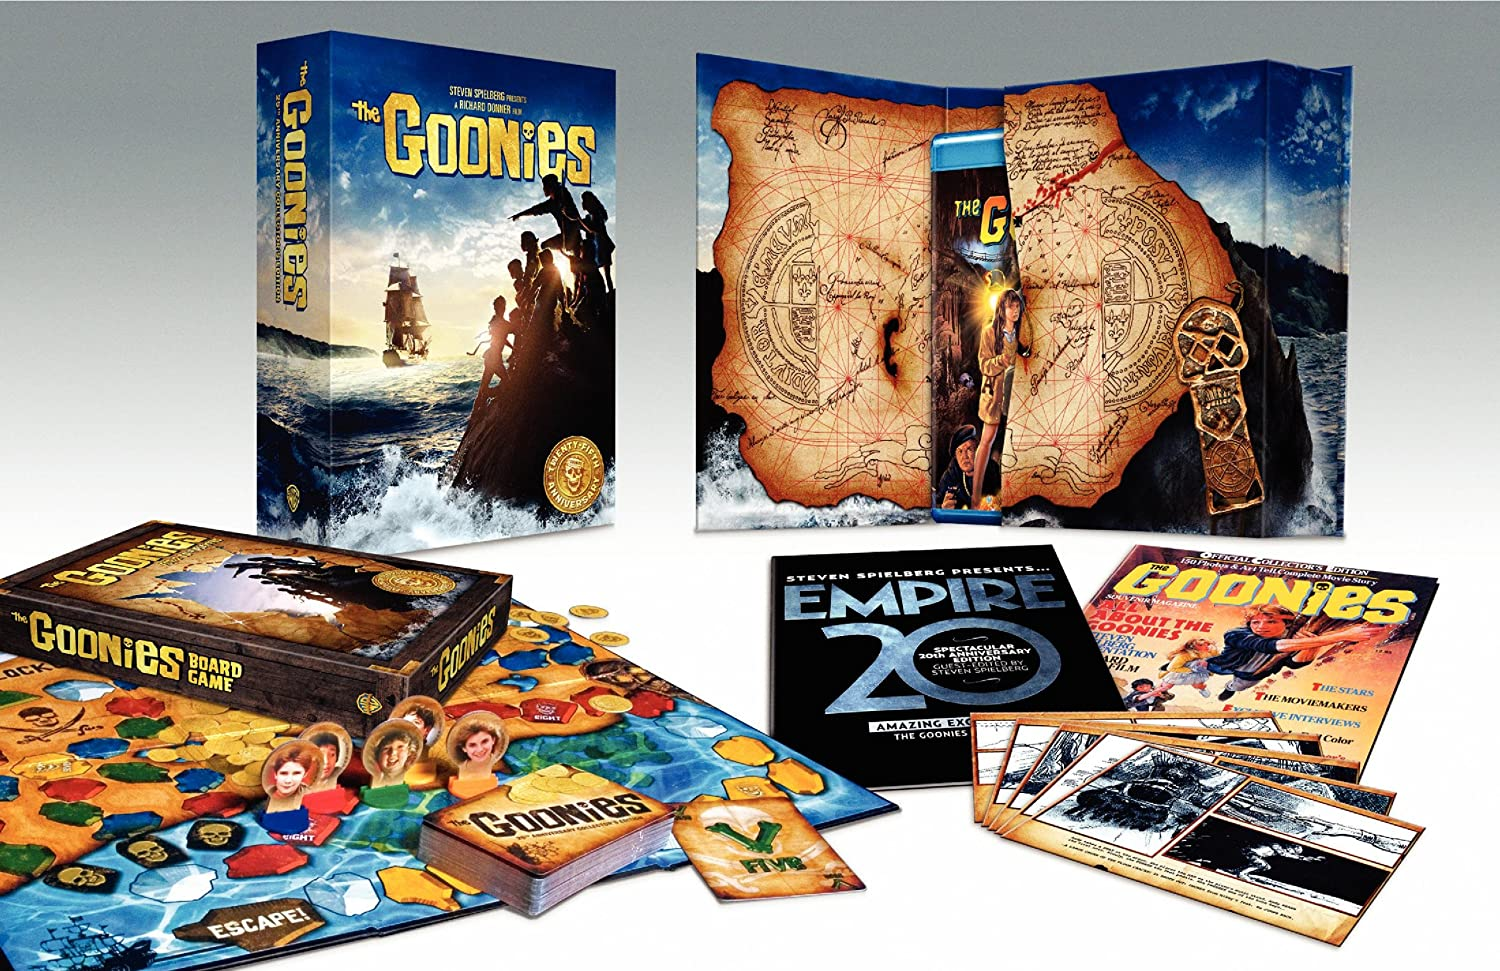 the goonies blu ray 25th anniversary ultimate collector\\\\\\\\\\\\\\\'s edition